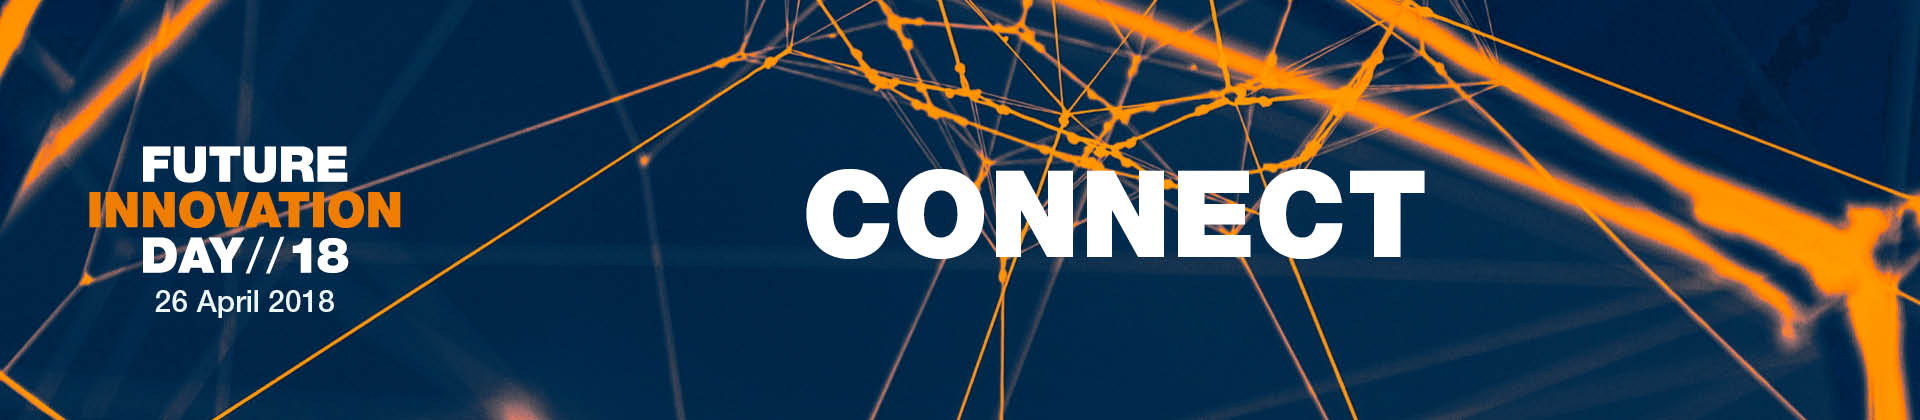 Future Innovation Project - CONNECT